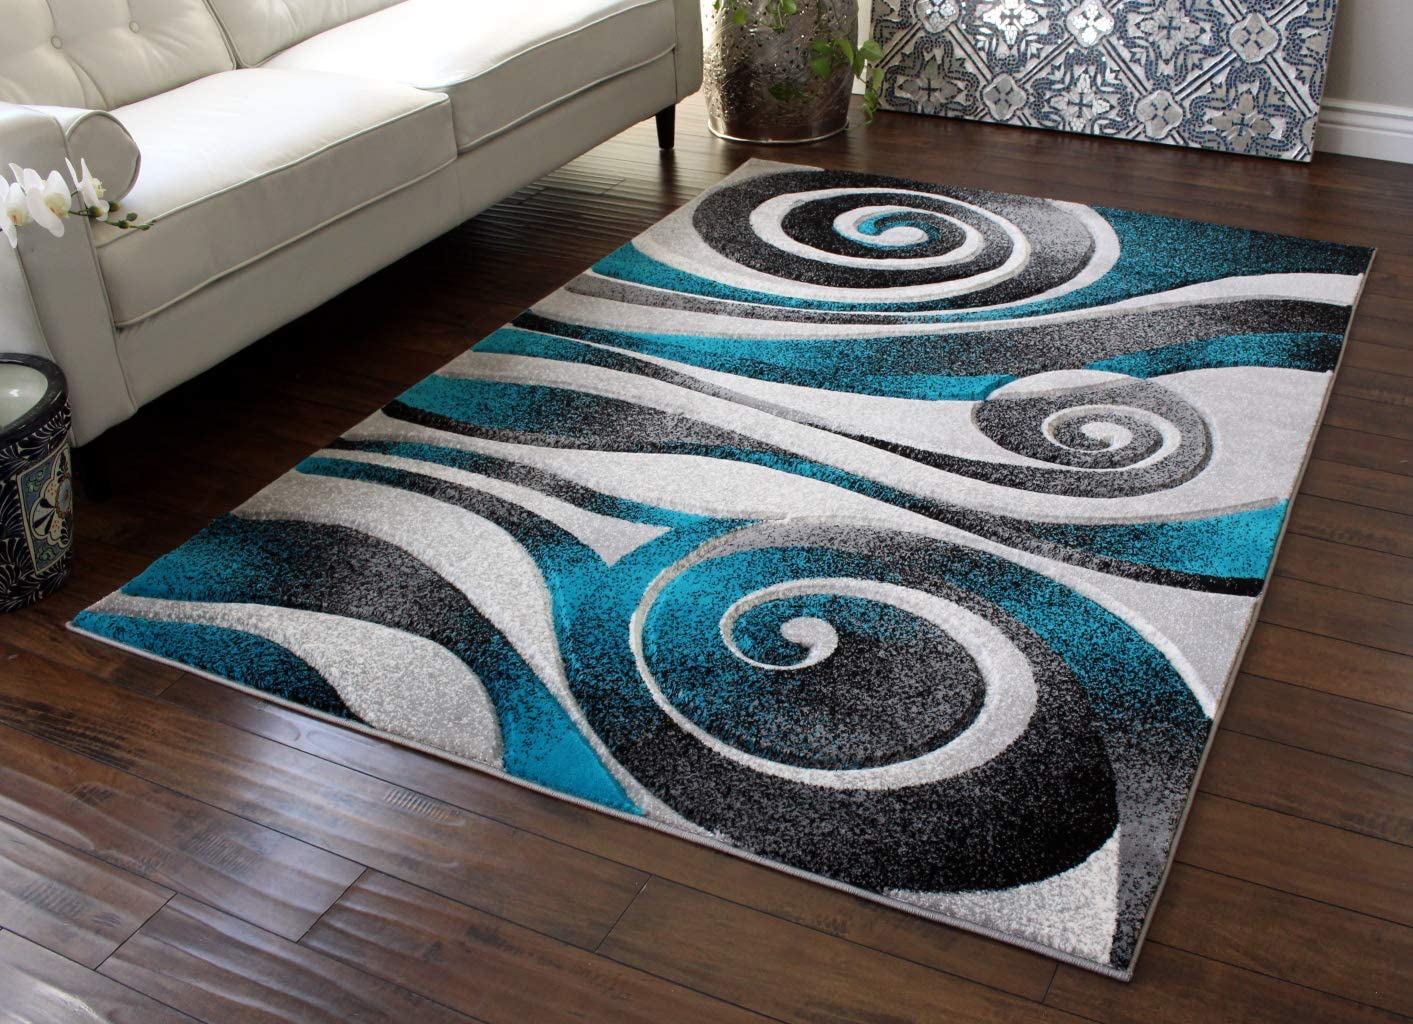 Masada Rugs Grey Black White Turquoise Super Special SALE held H Modern Woven Rug Virginia Beach Mall Area